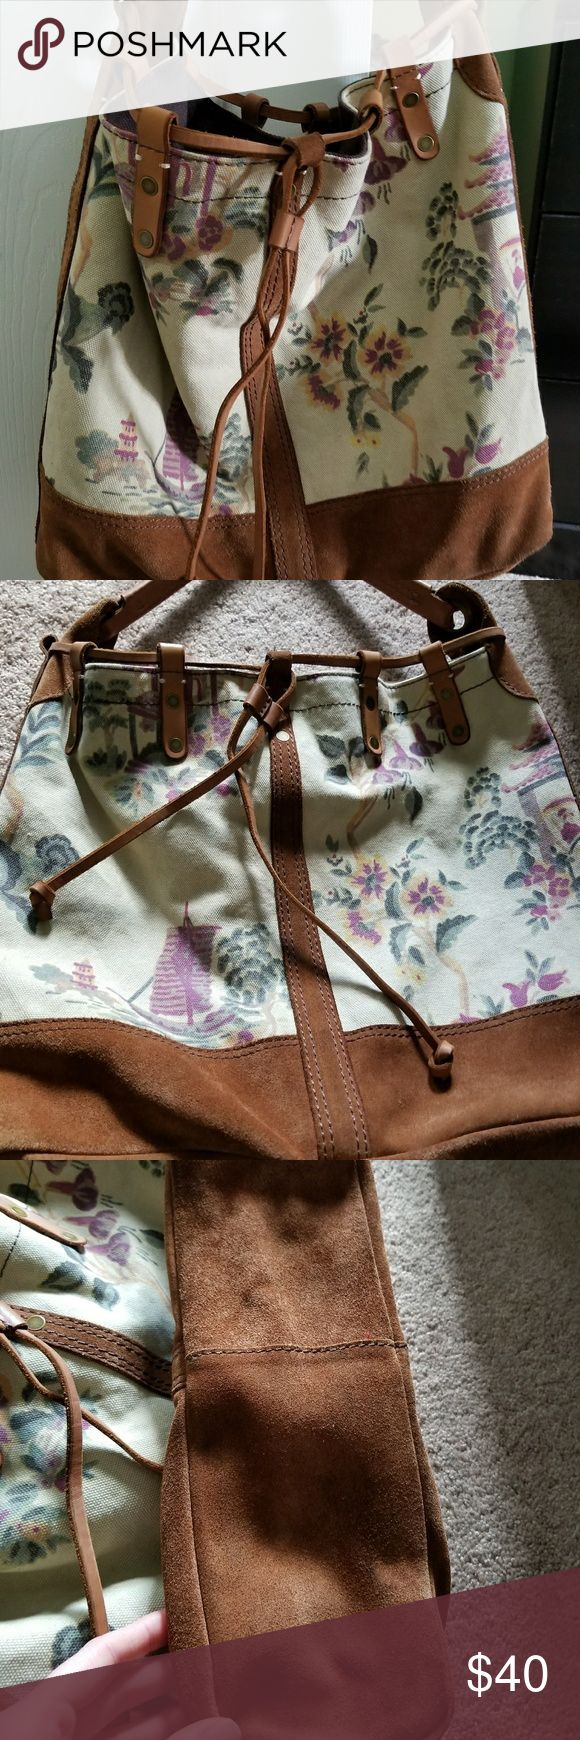 Lucky Brand Purse Used Lucky Brand Purse with cute Asian floral print. Comes from a smoke free home. I bought it used but never actually used it. Purse does have mark on back, see picture. Also suede on bottom isn't perfect, can see where it is worn on one corner. Minor marks on front. Please see all pictures for details and ask me any questions you may have. Purse still looks super cute. Make me an offer! Lucky Brand Bags Shoulder Bags